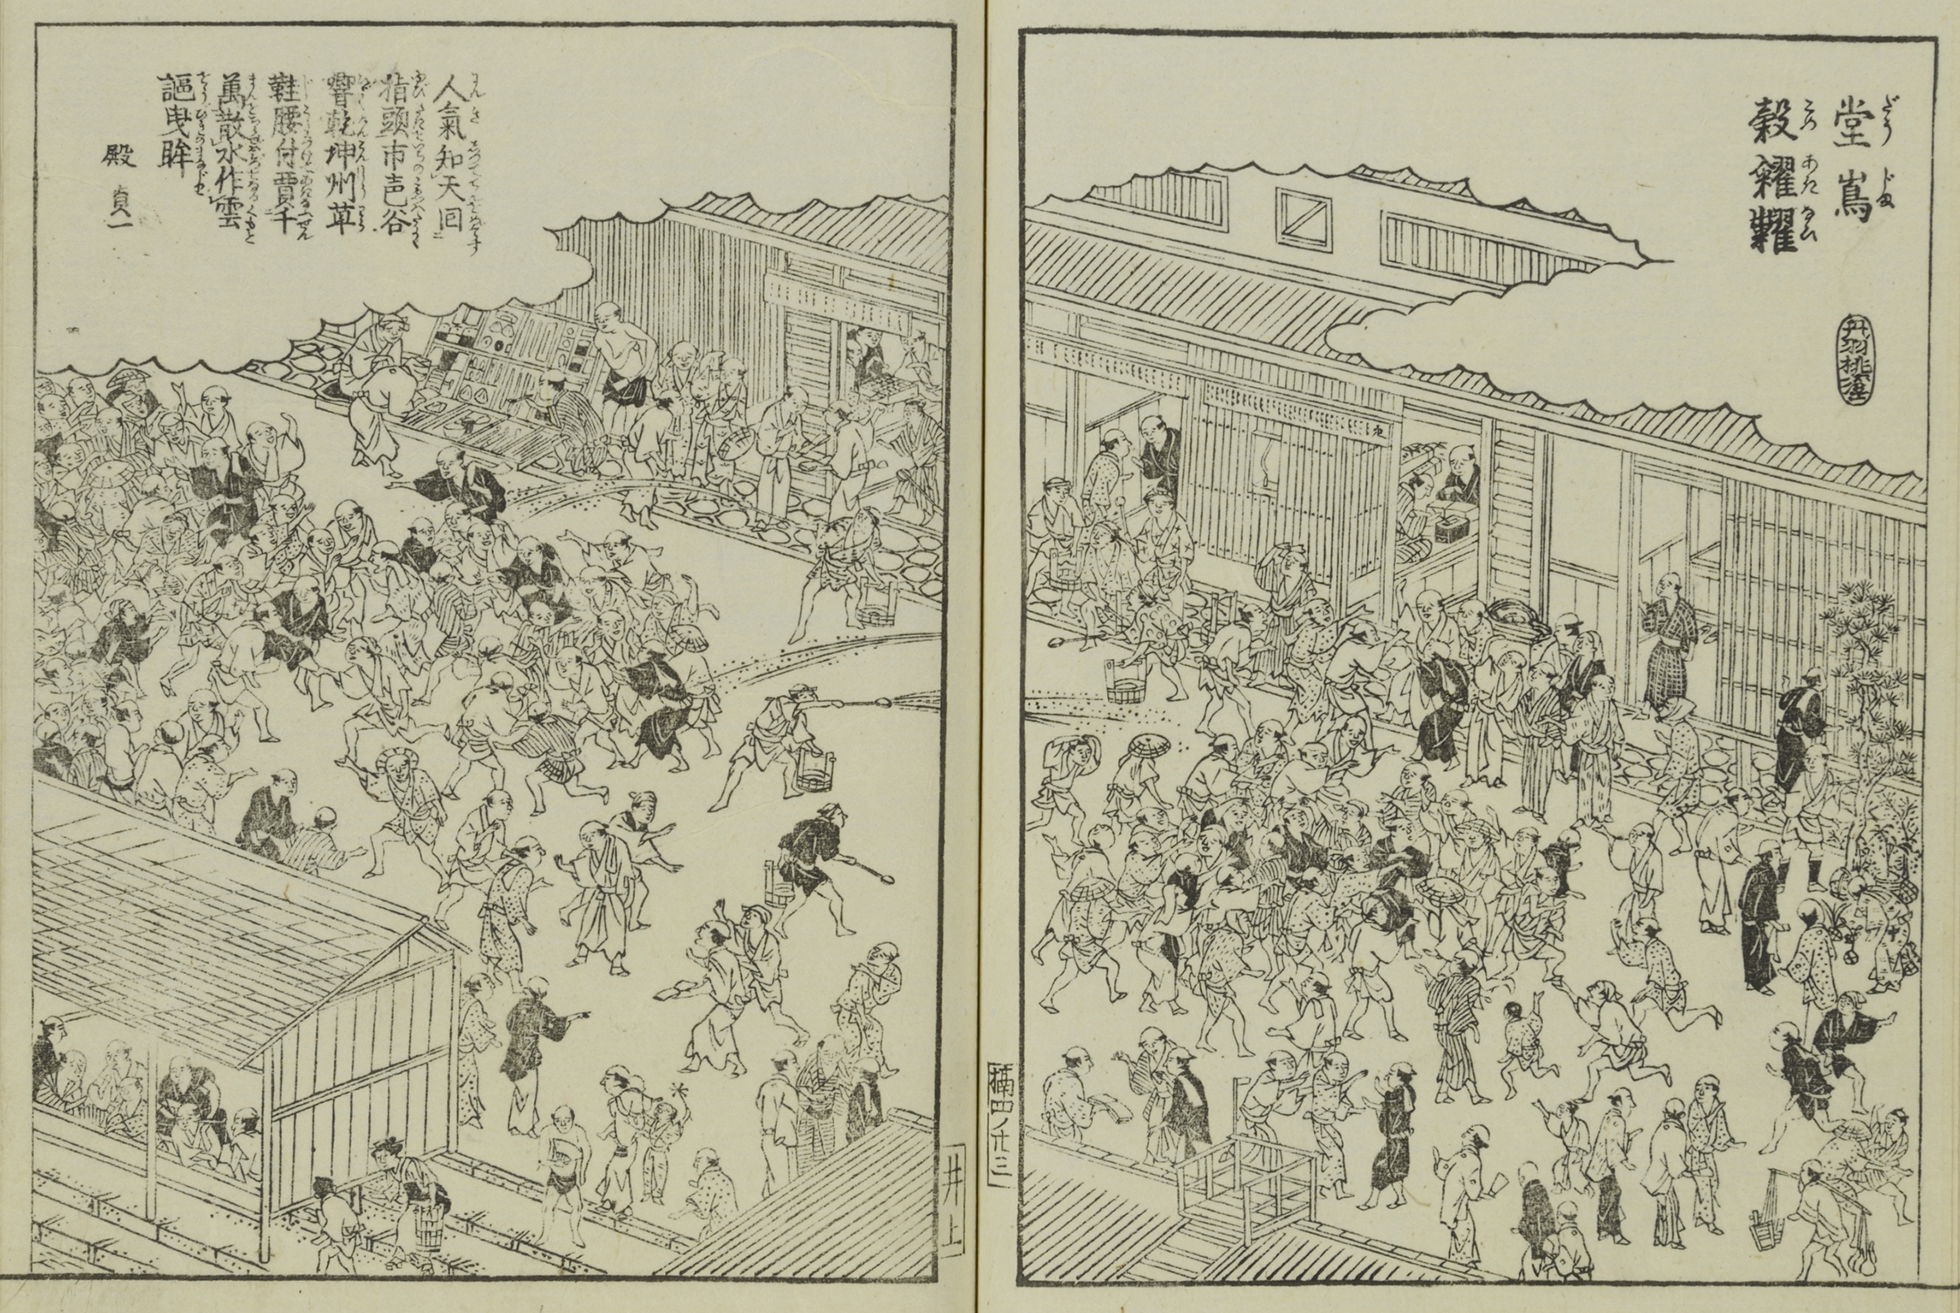 A black and white woodblock print showing officials dispersing a crowd with buckets of water.